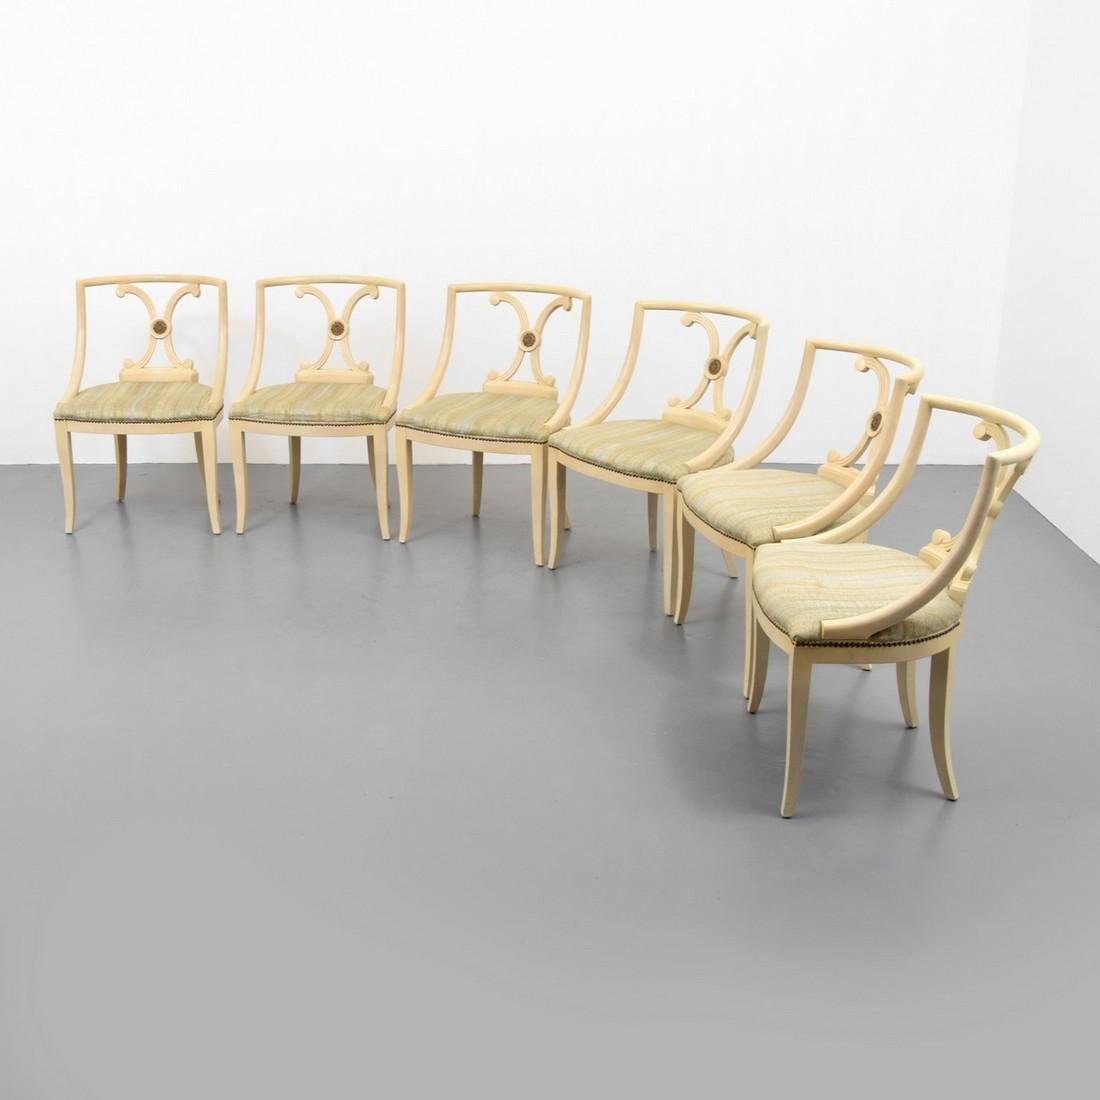 Renzo Rutilli Dining Chairs, Set of 6